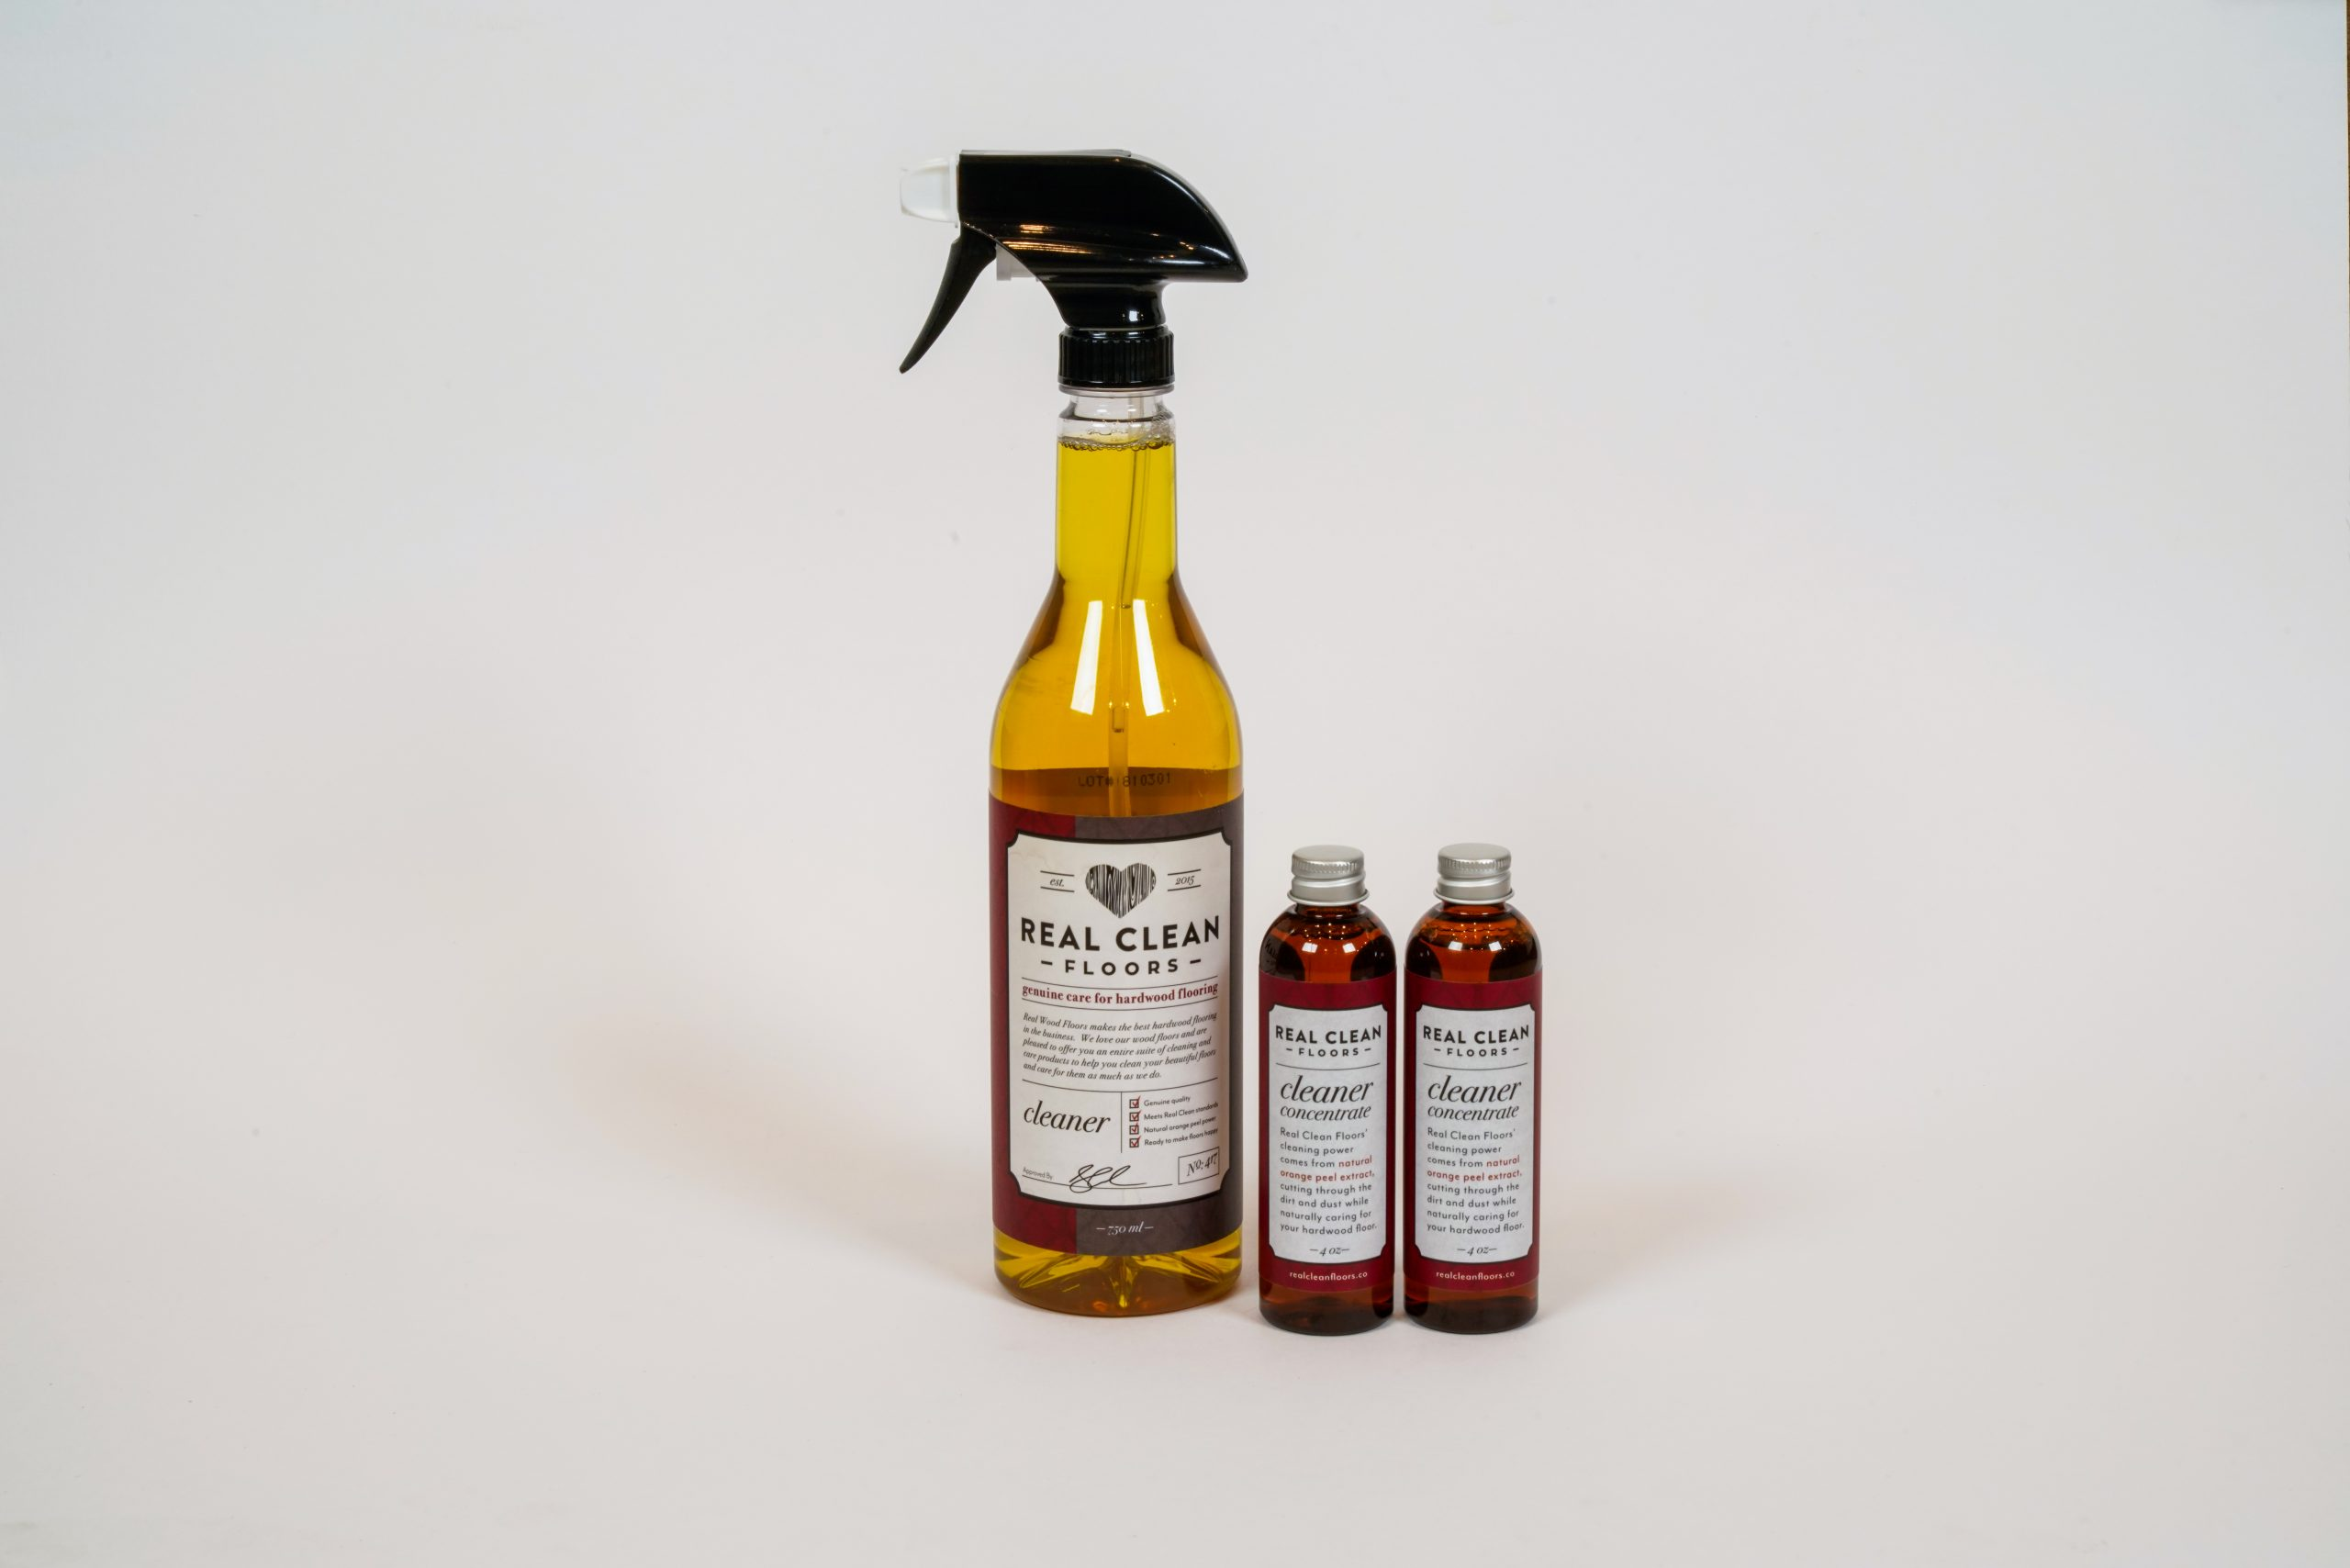 Hardwood Cleaning Spray 2 Bottles Of Concentrate Real Clean